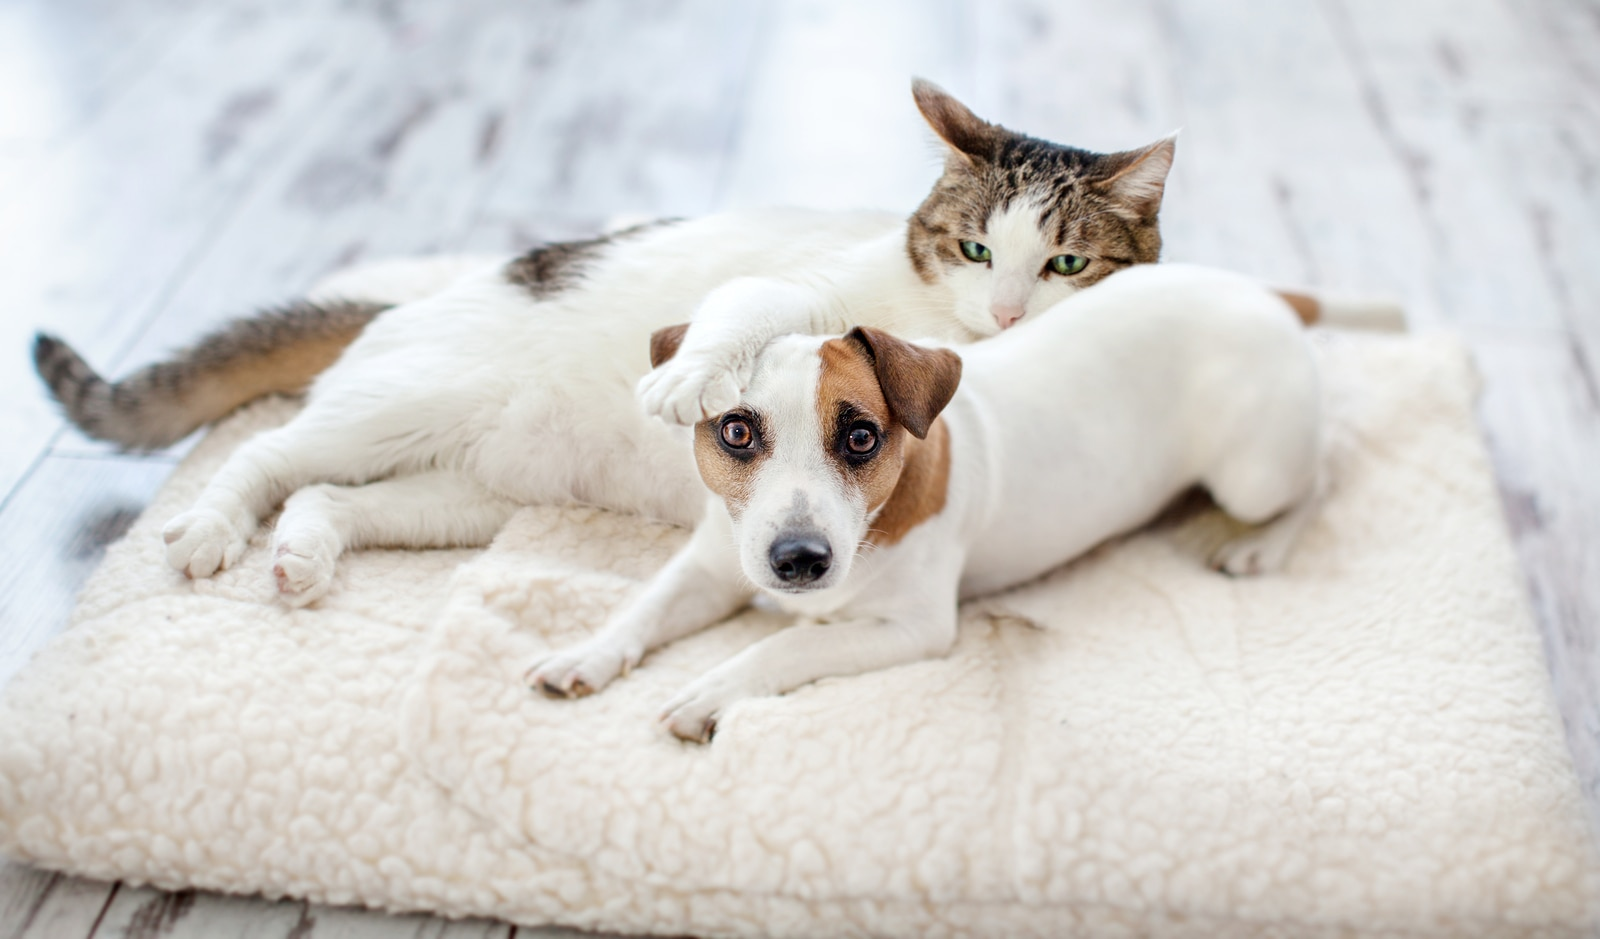 Jack Russell Terrier and cat snuggle on big pet pillow.